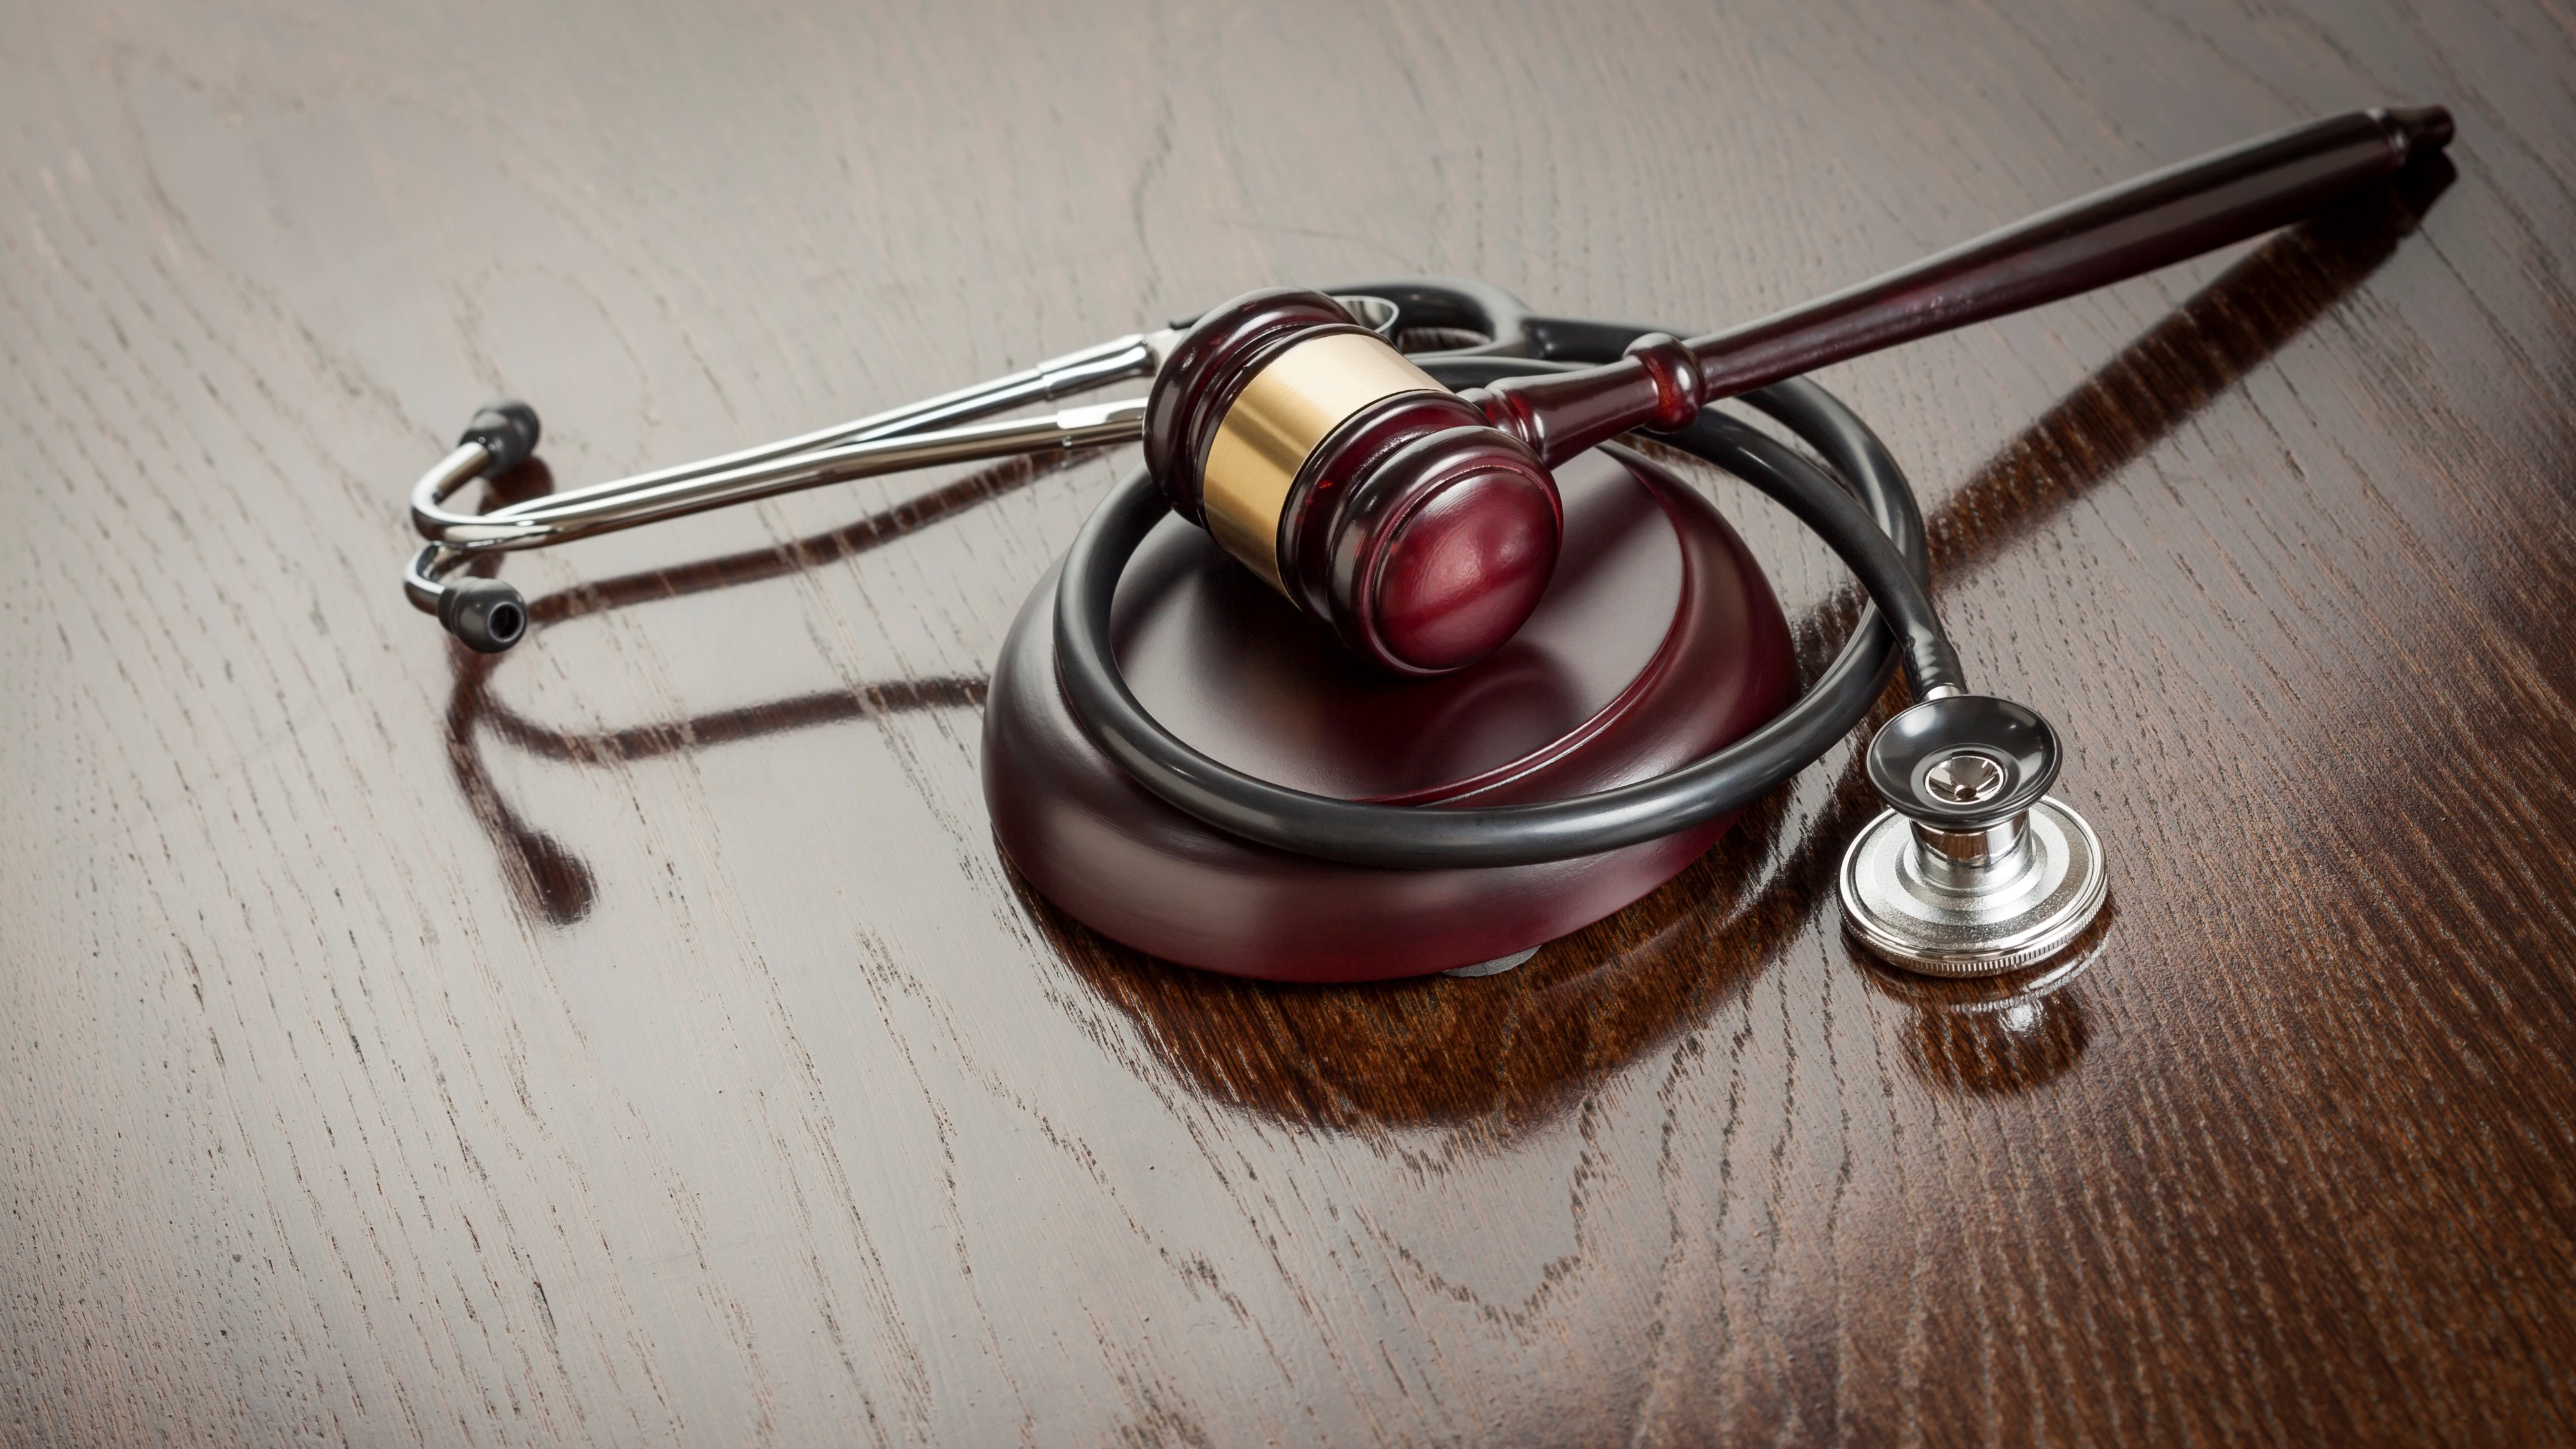 A courtroom gavel and a stethoscope